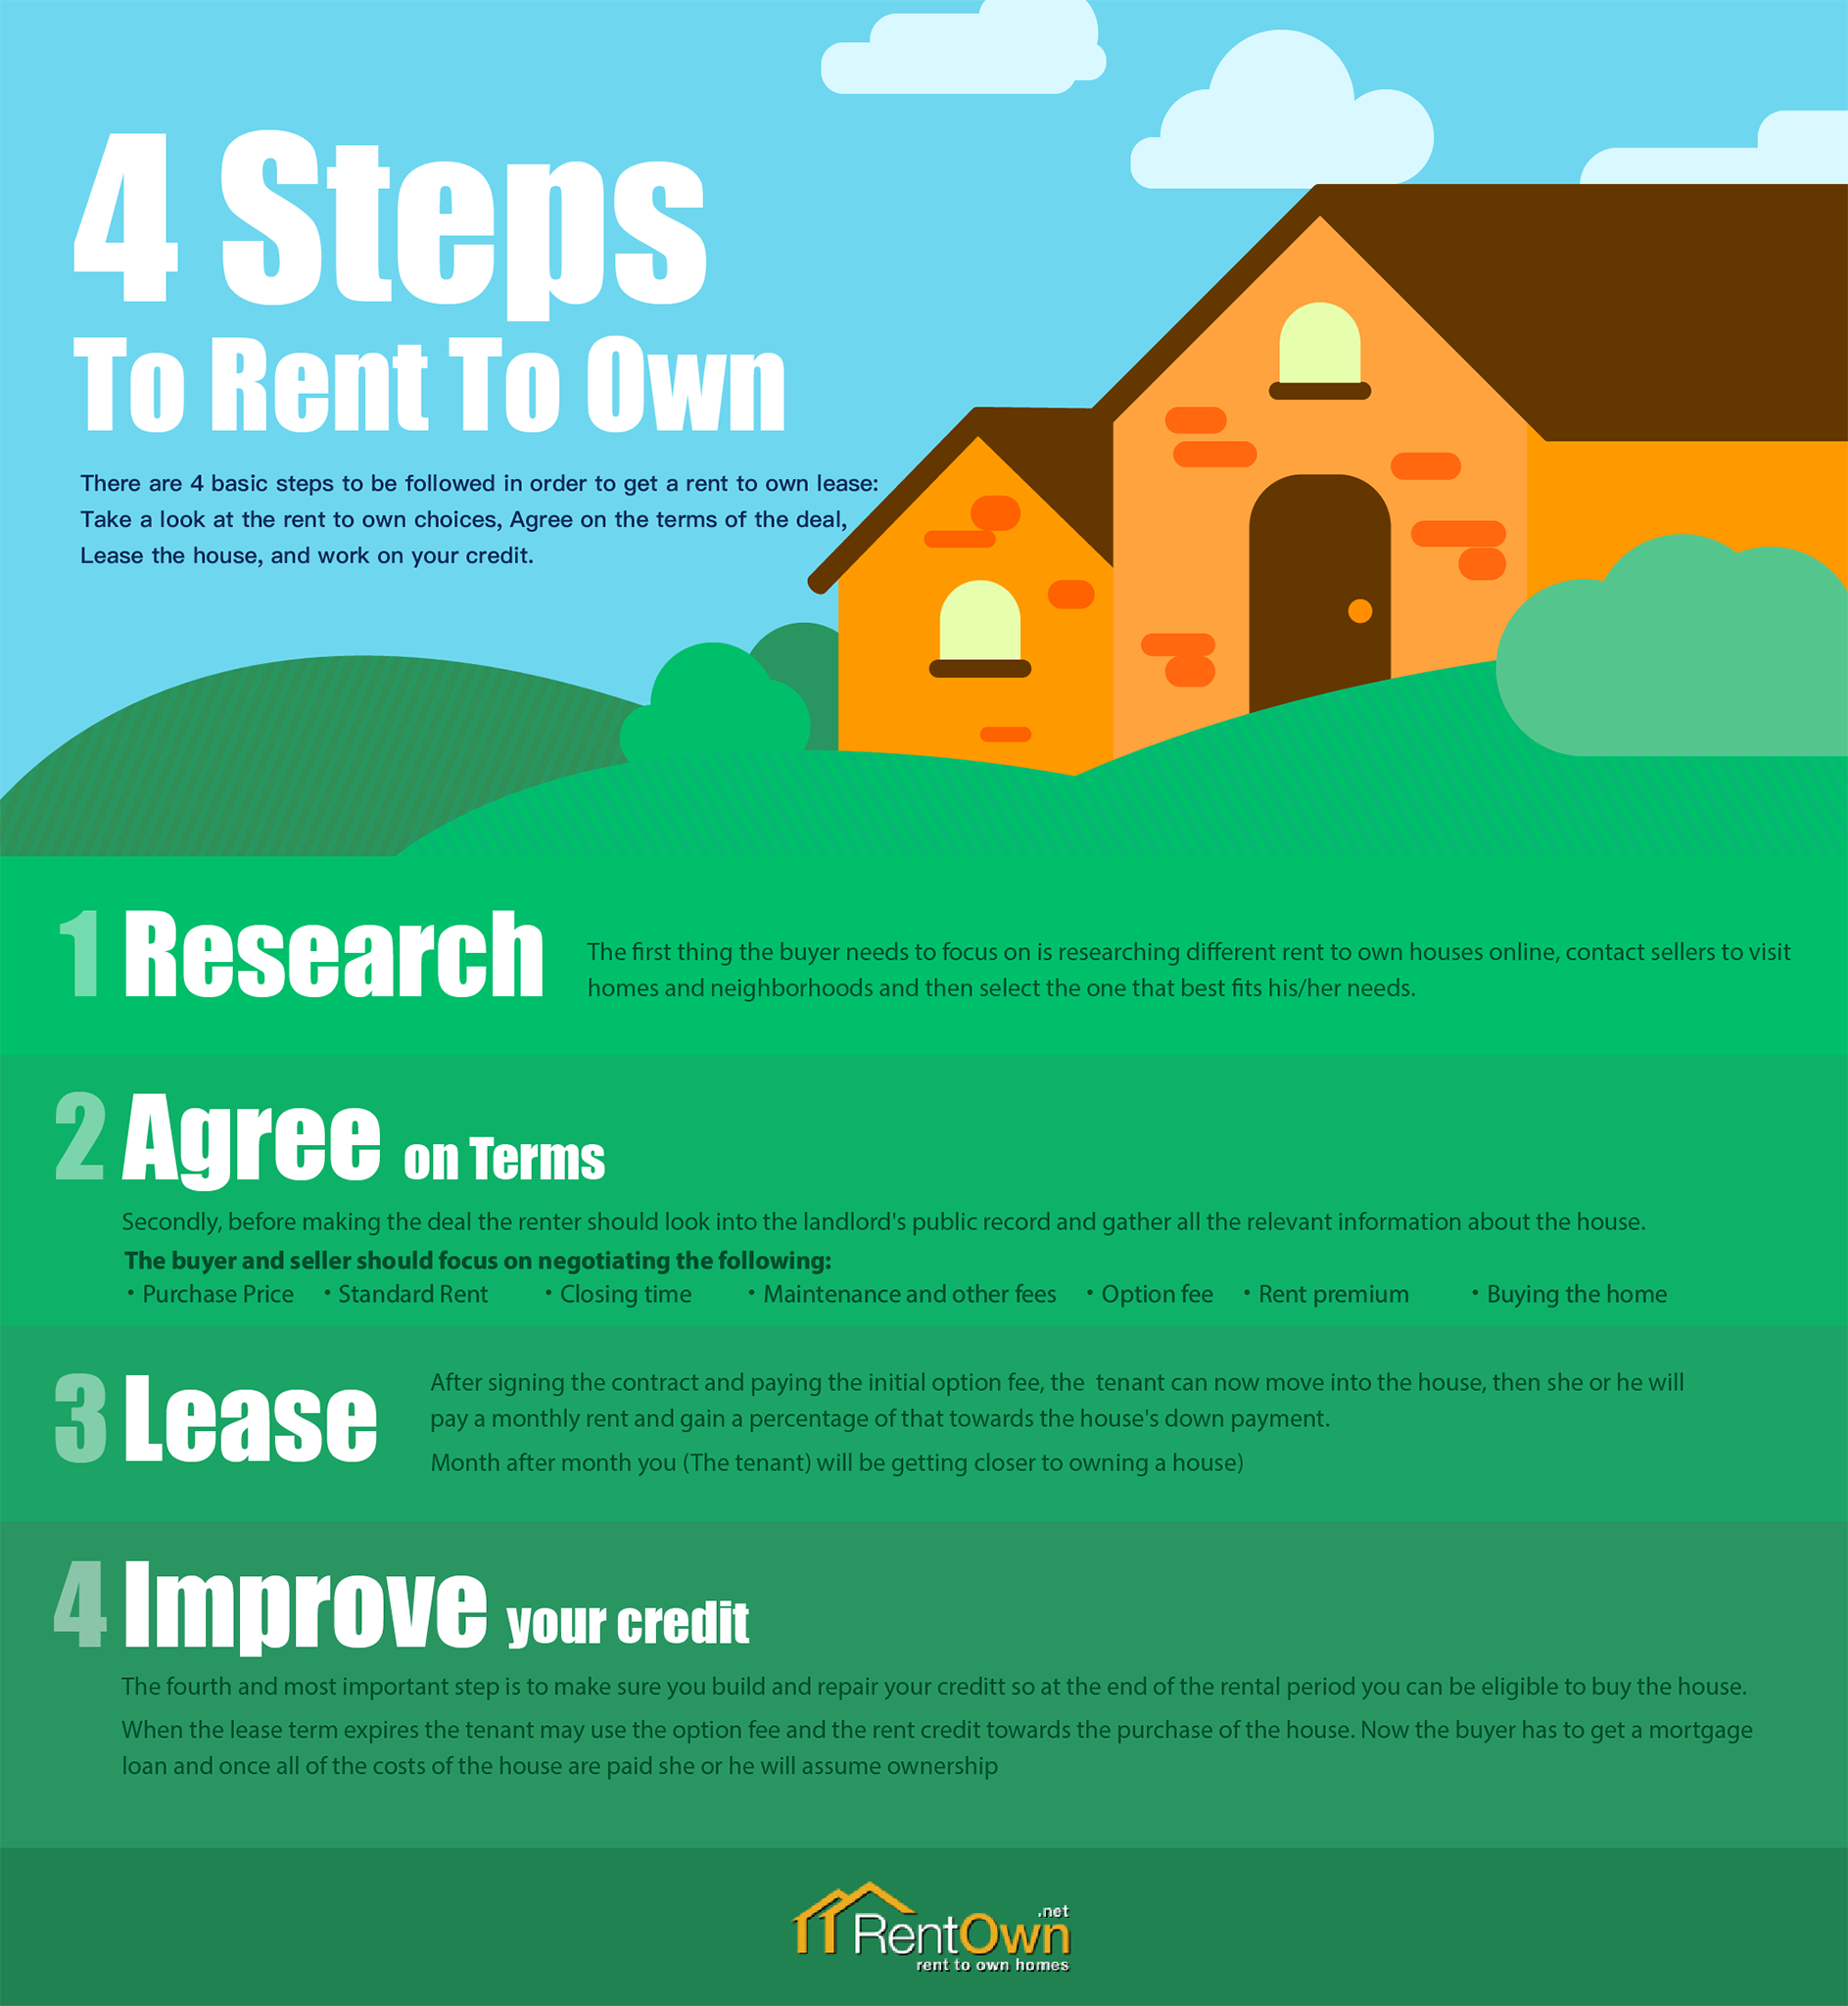 How To Rent To Own